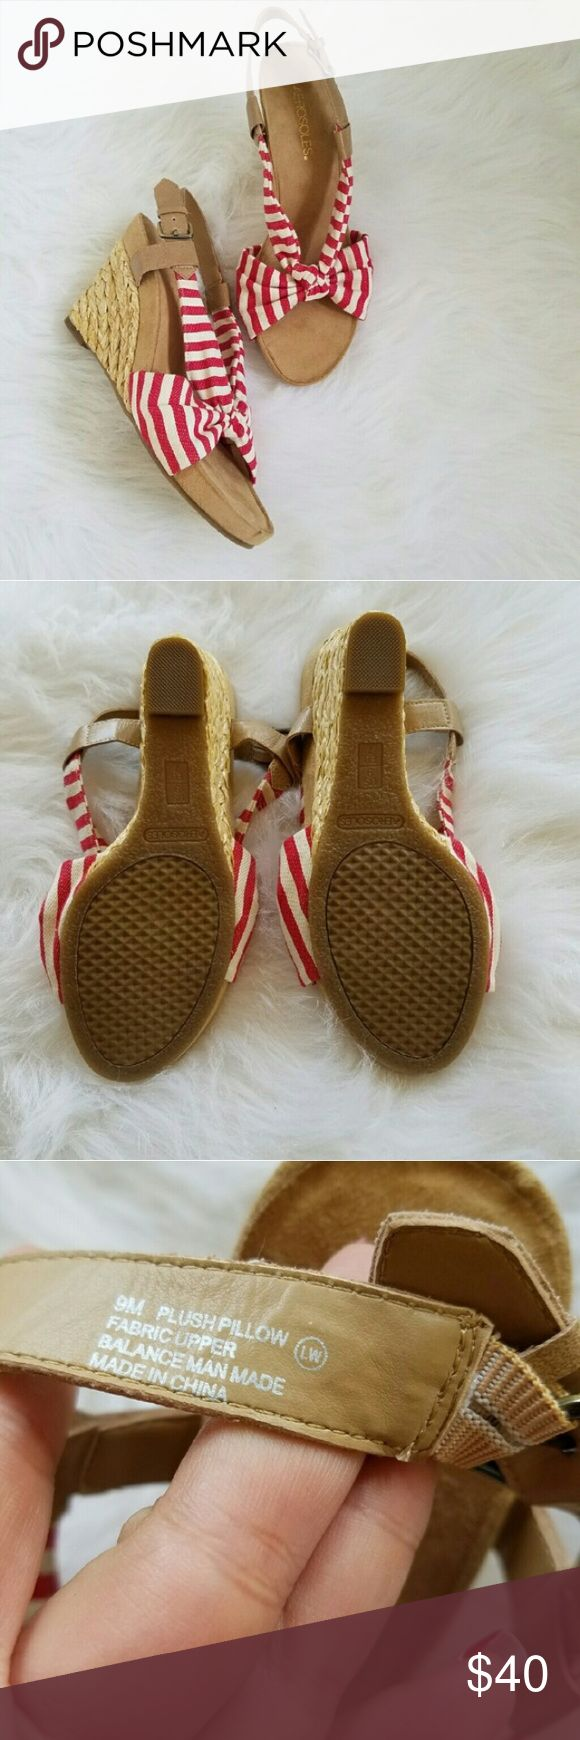 Aerosoles Red Striped Strappy Wedge Heels Nautical red and white stripes . Cushioned . Wicker woven wedge . Stretchy ankle strap with buckle . Excellent condition, like new . True to size . #122804 AEROSOLES Shoes Wedges